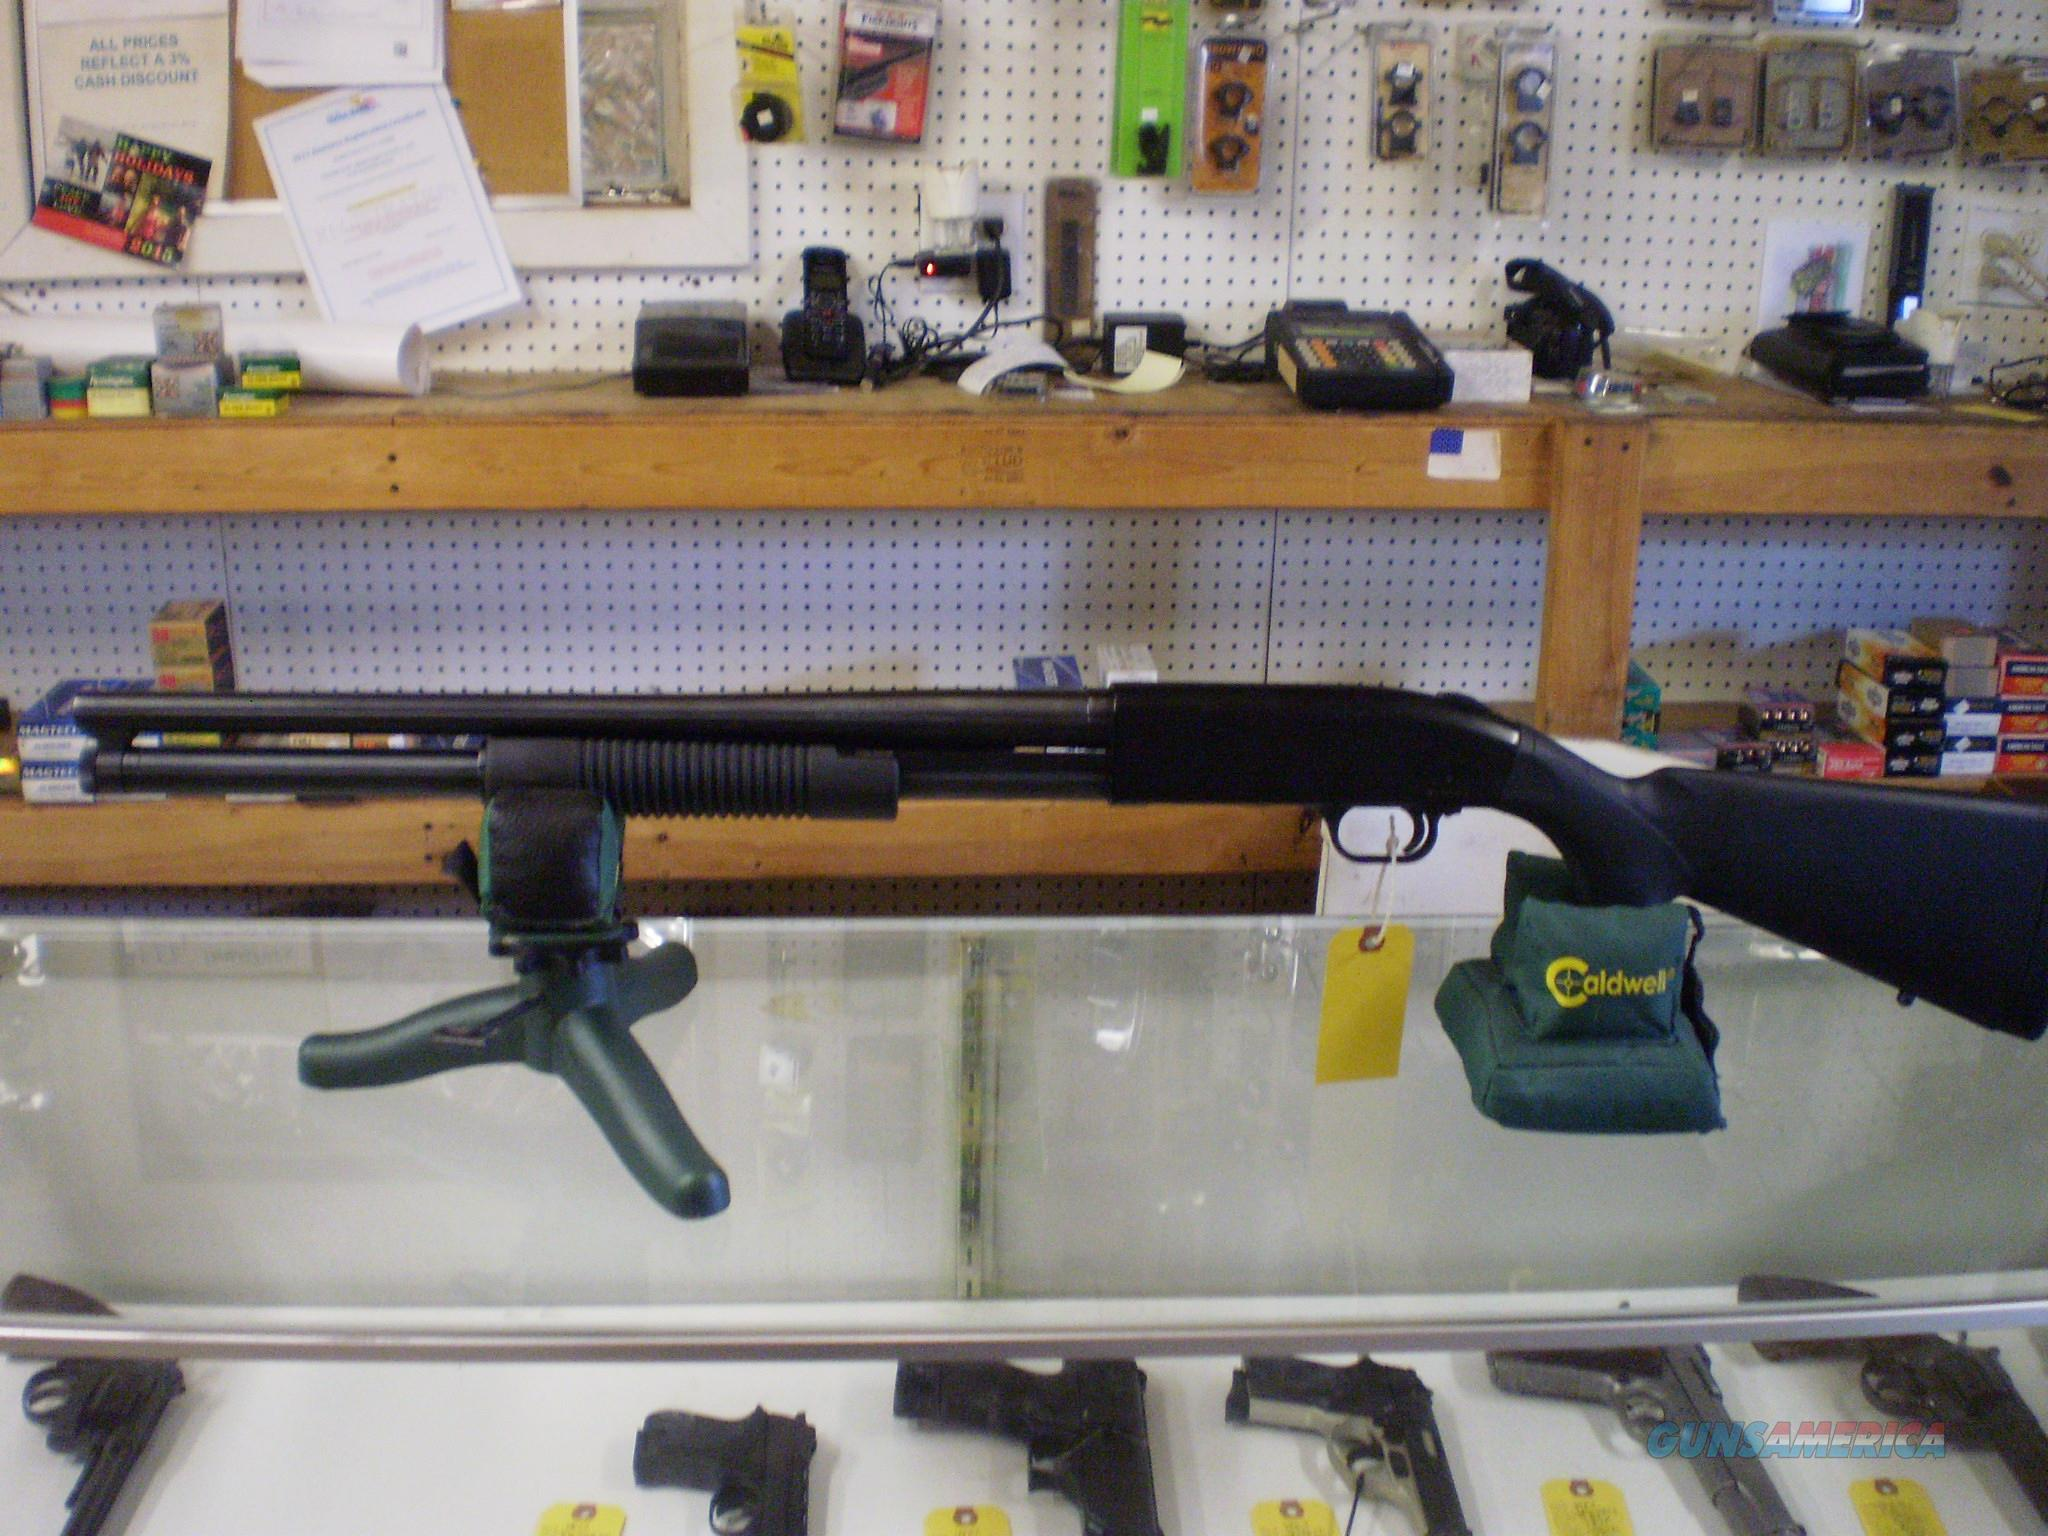 MOSSBERG 500 8 SHOT 12 GAUGE  Guns > Shotguns > Mossberg Shotguns > Pump > Tactical